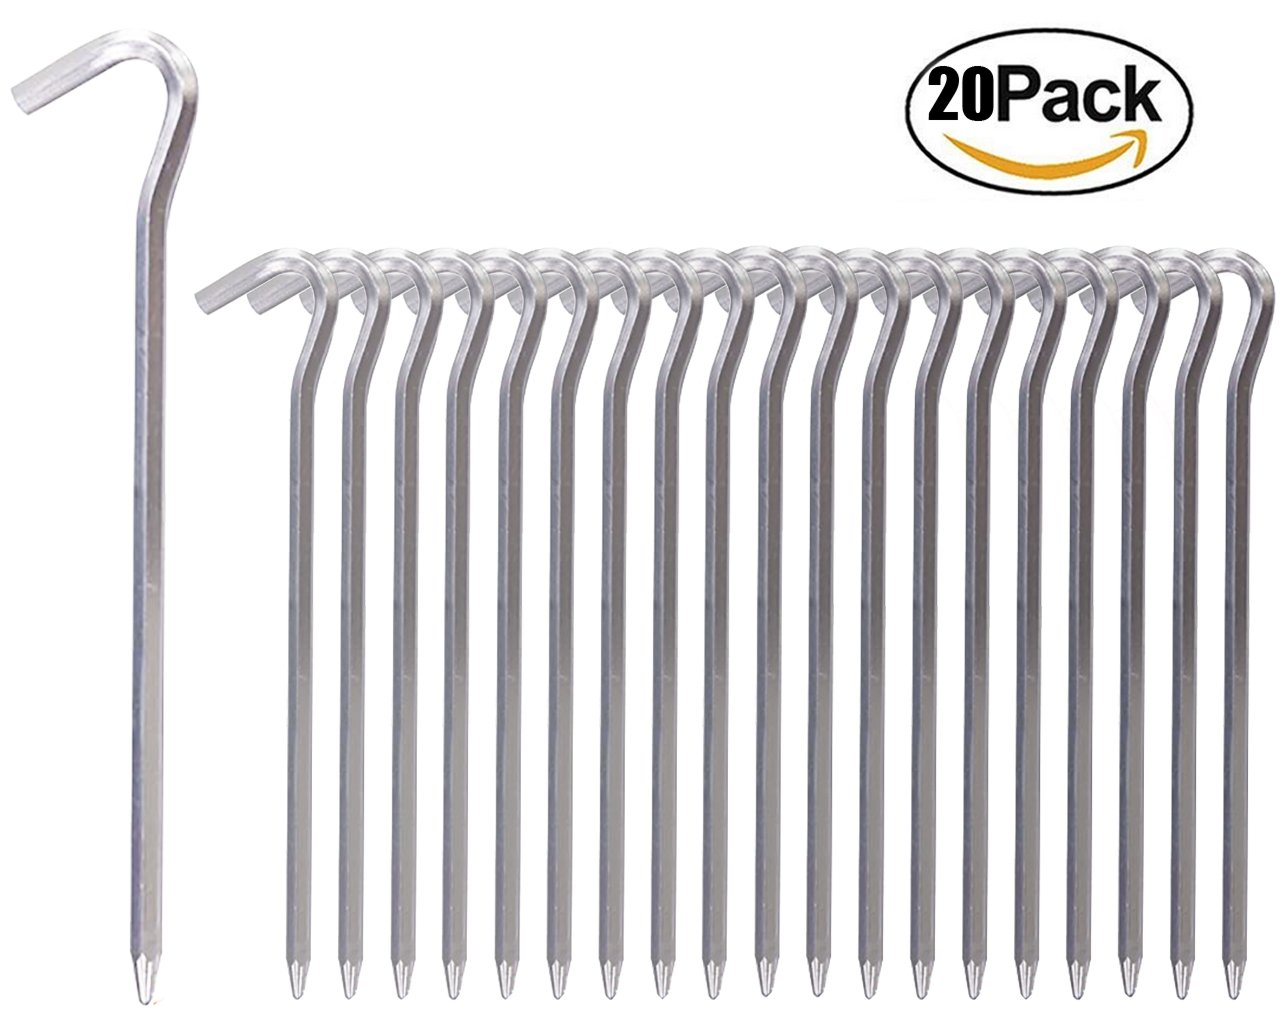 RIY 7'' Camping Tent Stakes Aluminum Heavy Duty Garden Canopy Stakes Pegs for Plants 20pcs